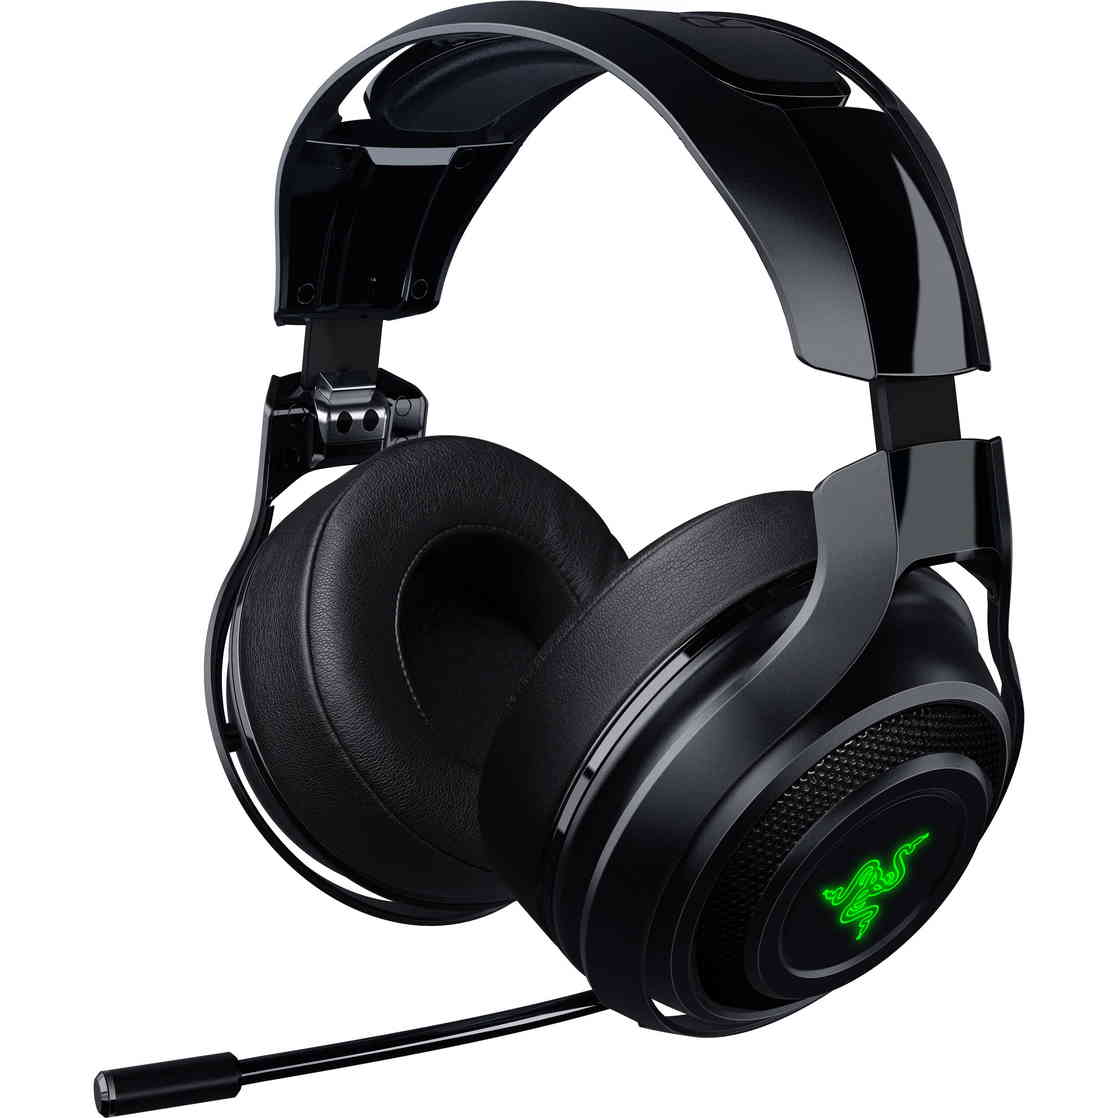 Razer ManO'War gaming headsets